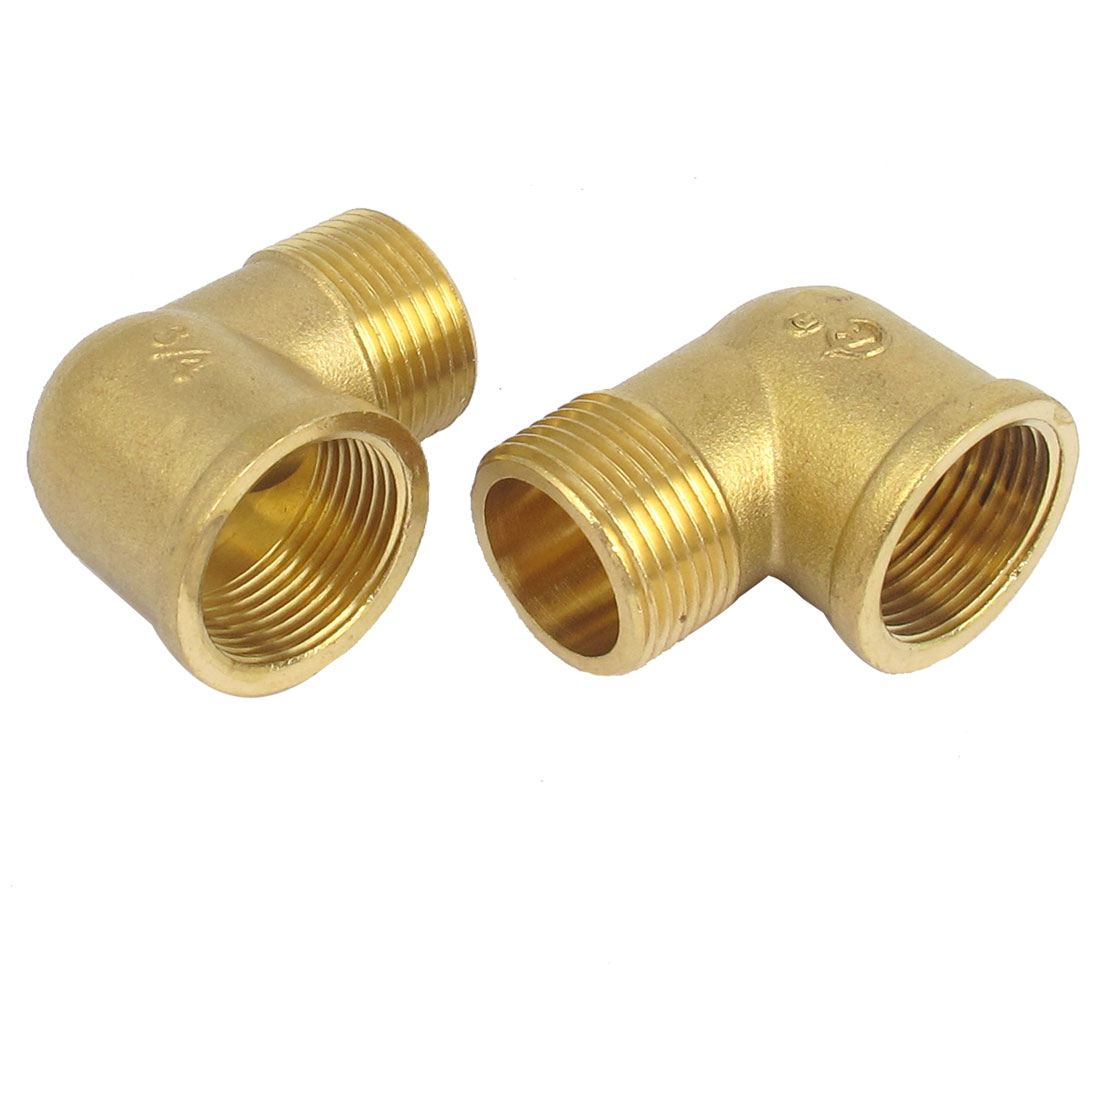 Brass Right Angle 3/4BSP Male to Female Elbow Connector Coupler Fitting Adapter 2PCS